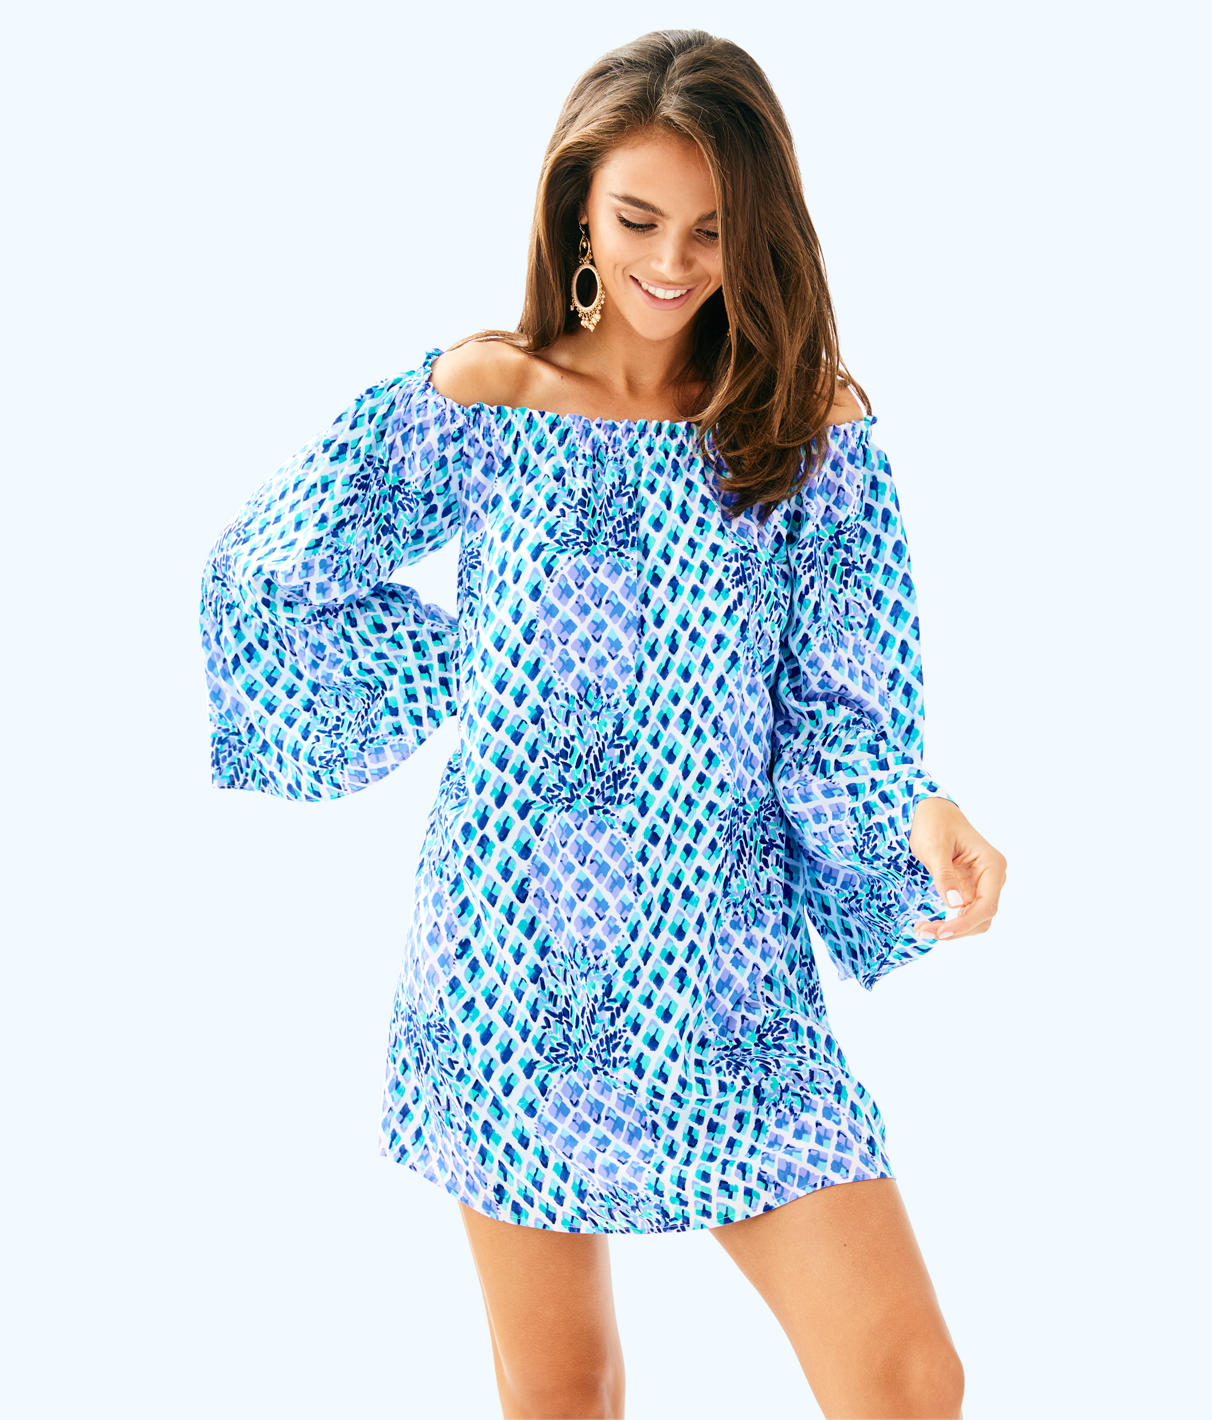 Lilly Pulitzer Lilly Pulitzer Womens Nevie Dress